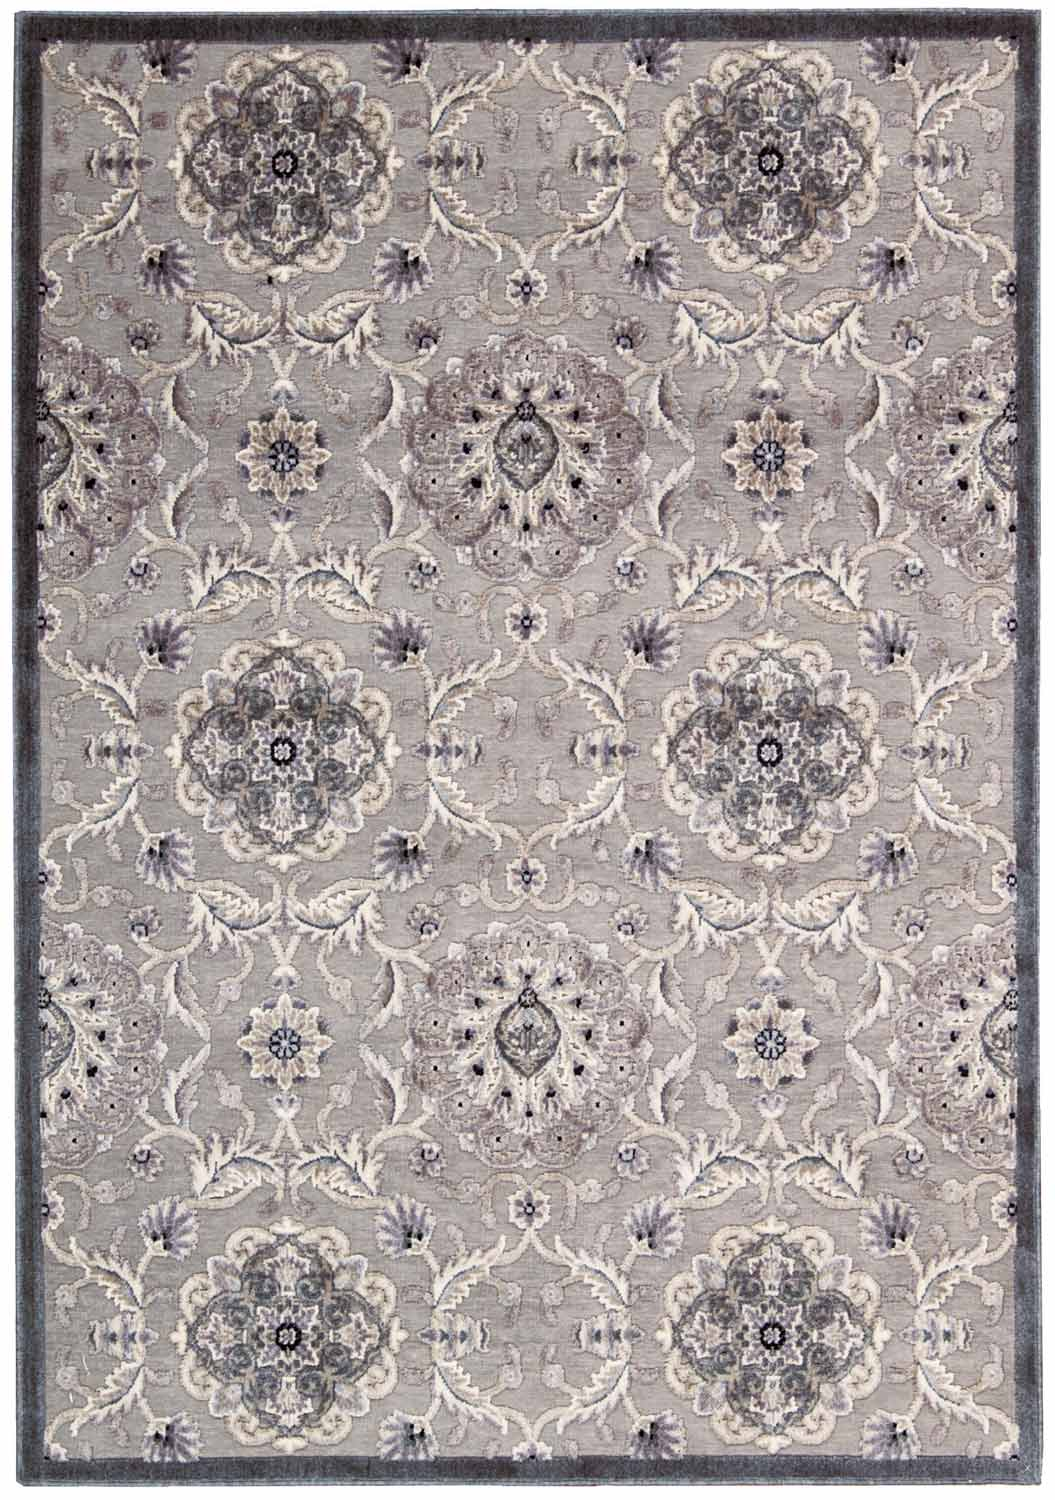 Nourison Graphic Illusions GIL12 Grey Area Rug